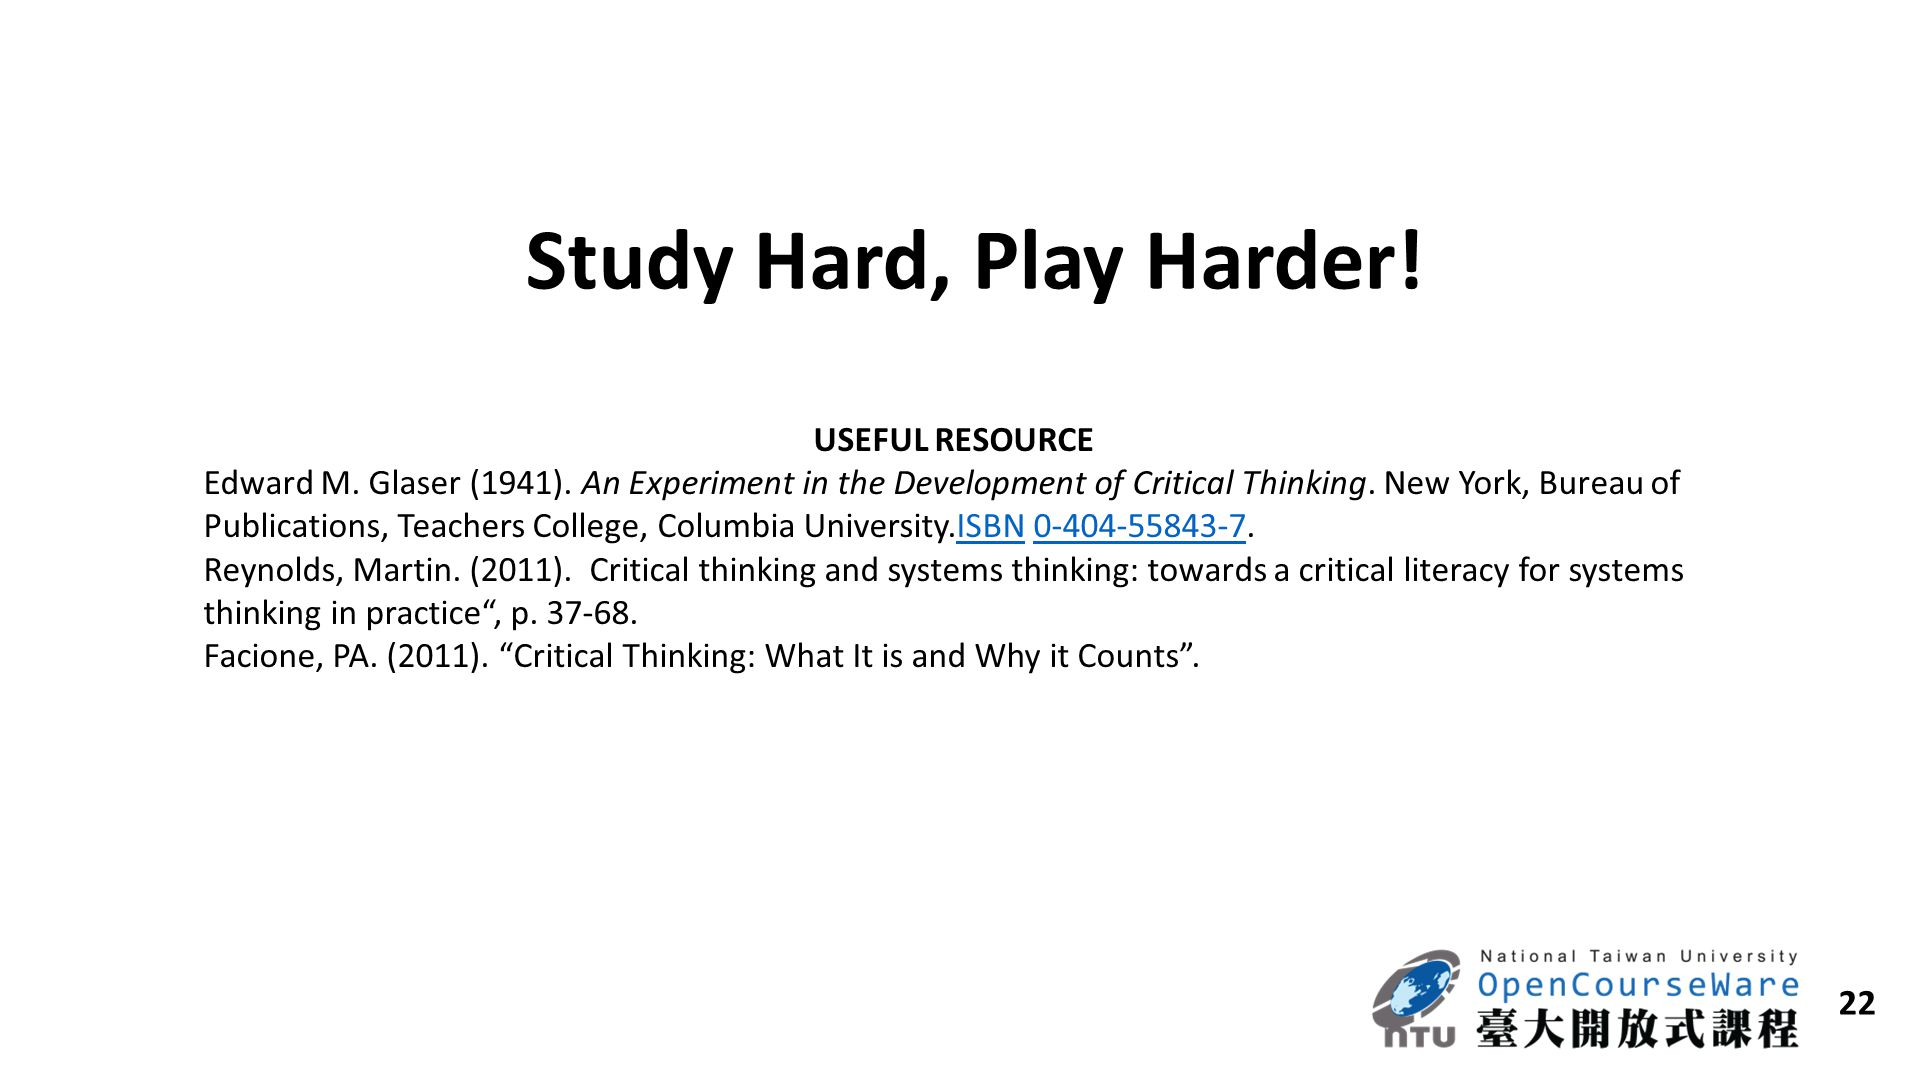 22 Study Hard, Play Harder! USEFUL RESOURCE Edward M. Glaser (1941). An Experiment in the Development of Critical Thinking. New York, Bureau of Public